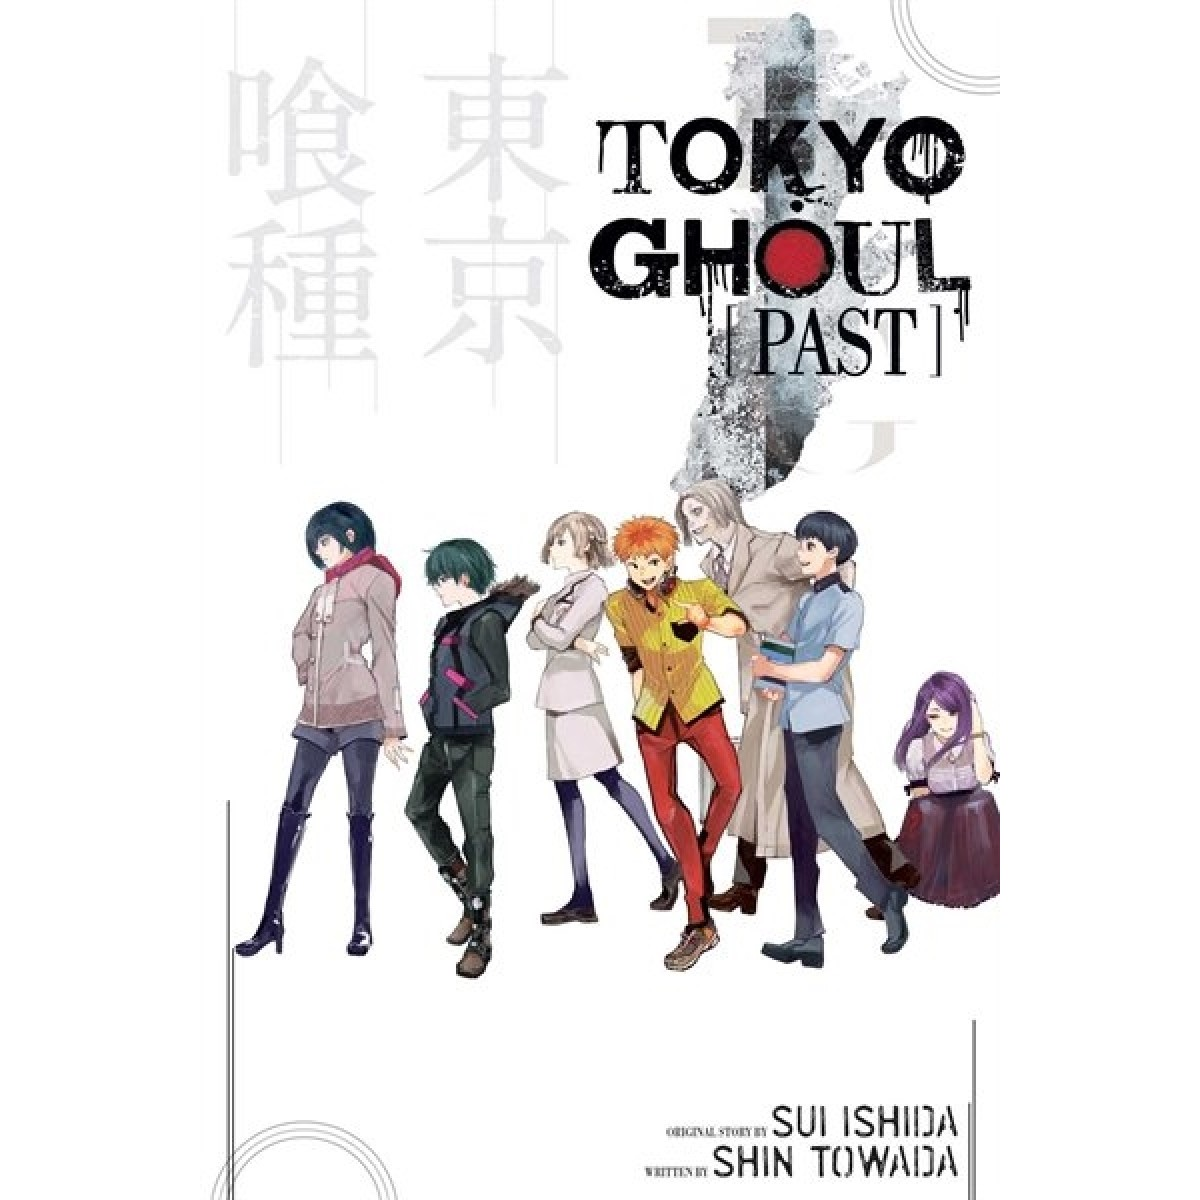 Tokyo Ghoul: Past (Tokyo Ghoul Light Novels #3) - English Books